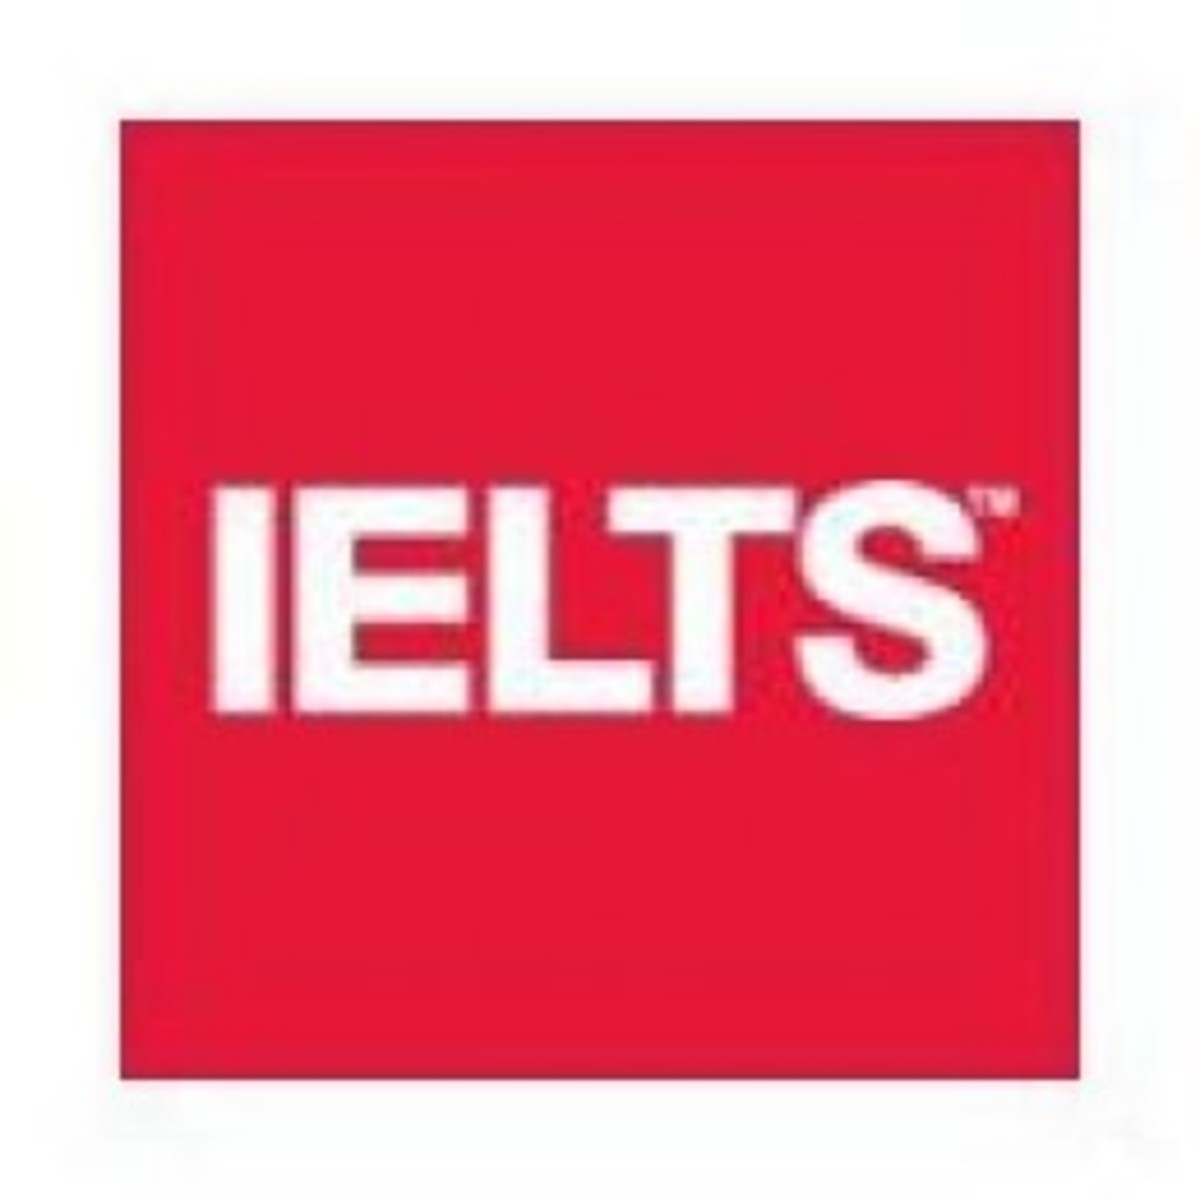 Ielts Speaking Model: A Perfect Holiday - Part 2